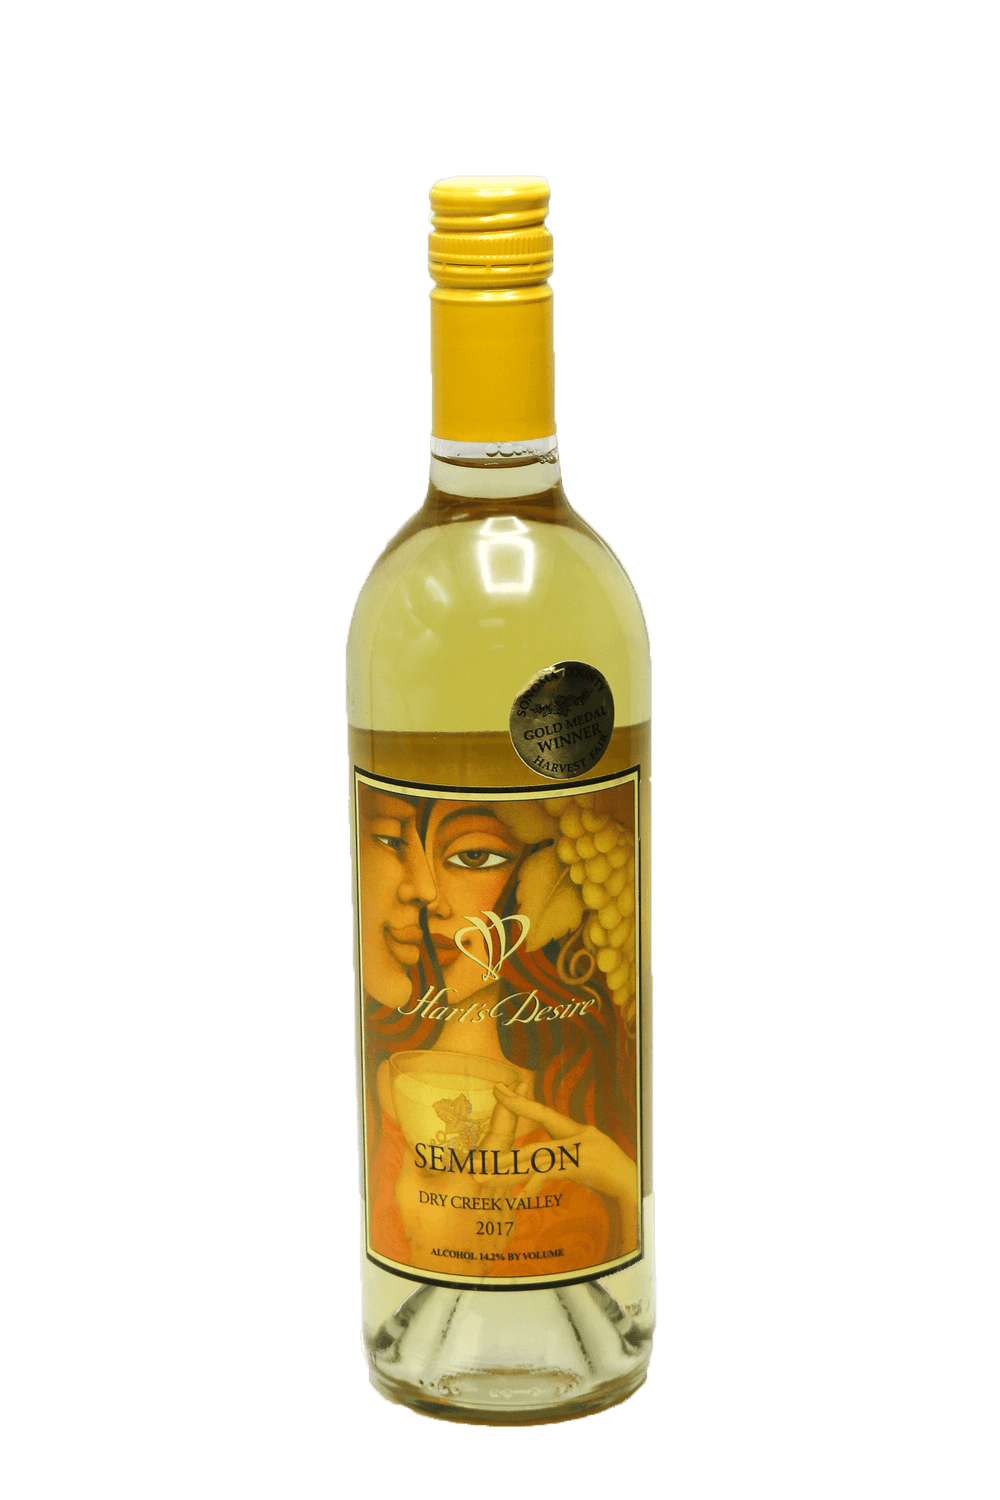 2017 Hart's Desire Dry Creek Valley Semillon